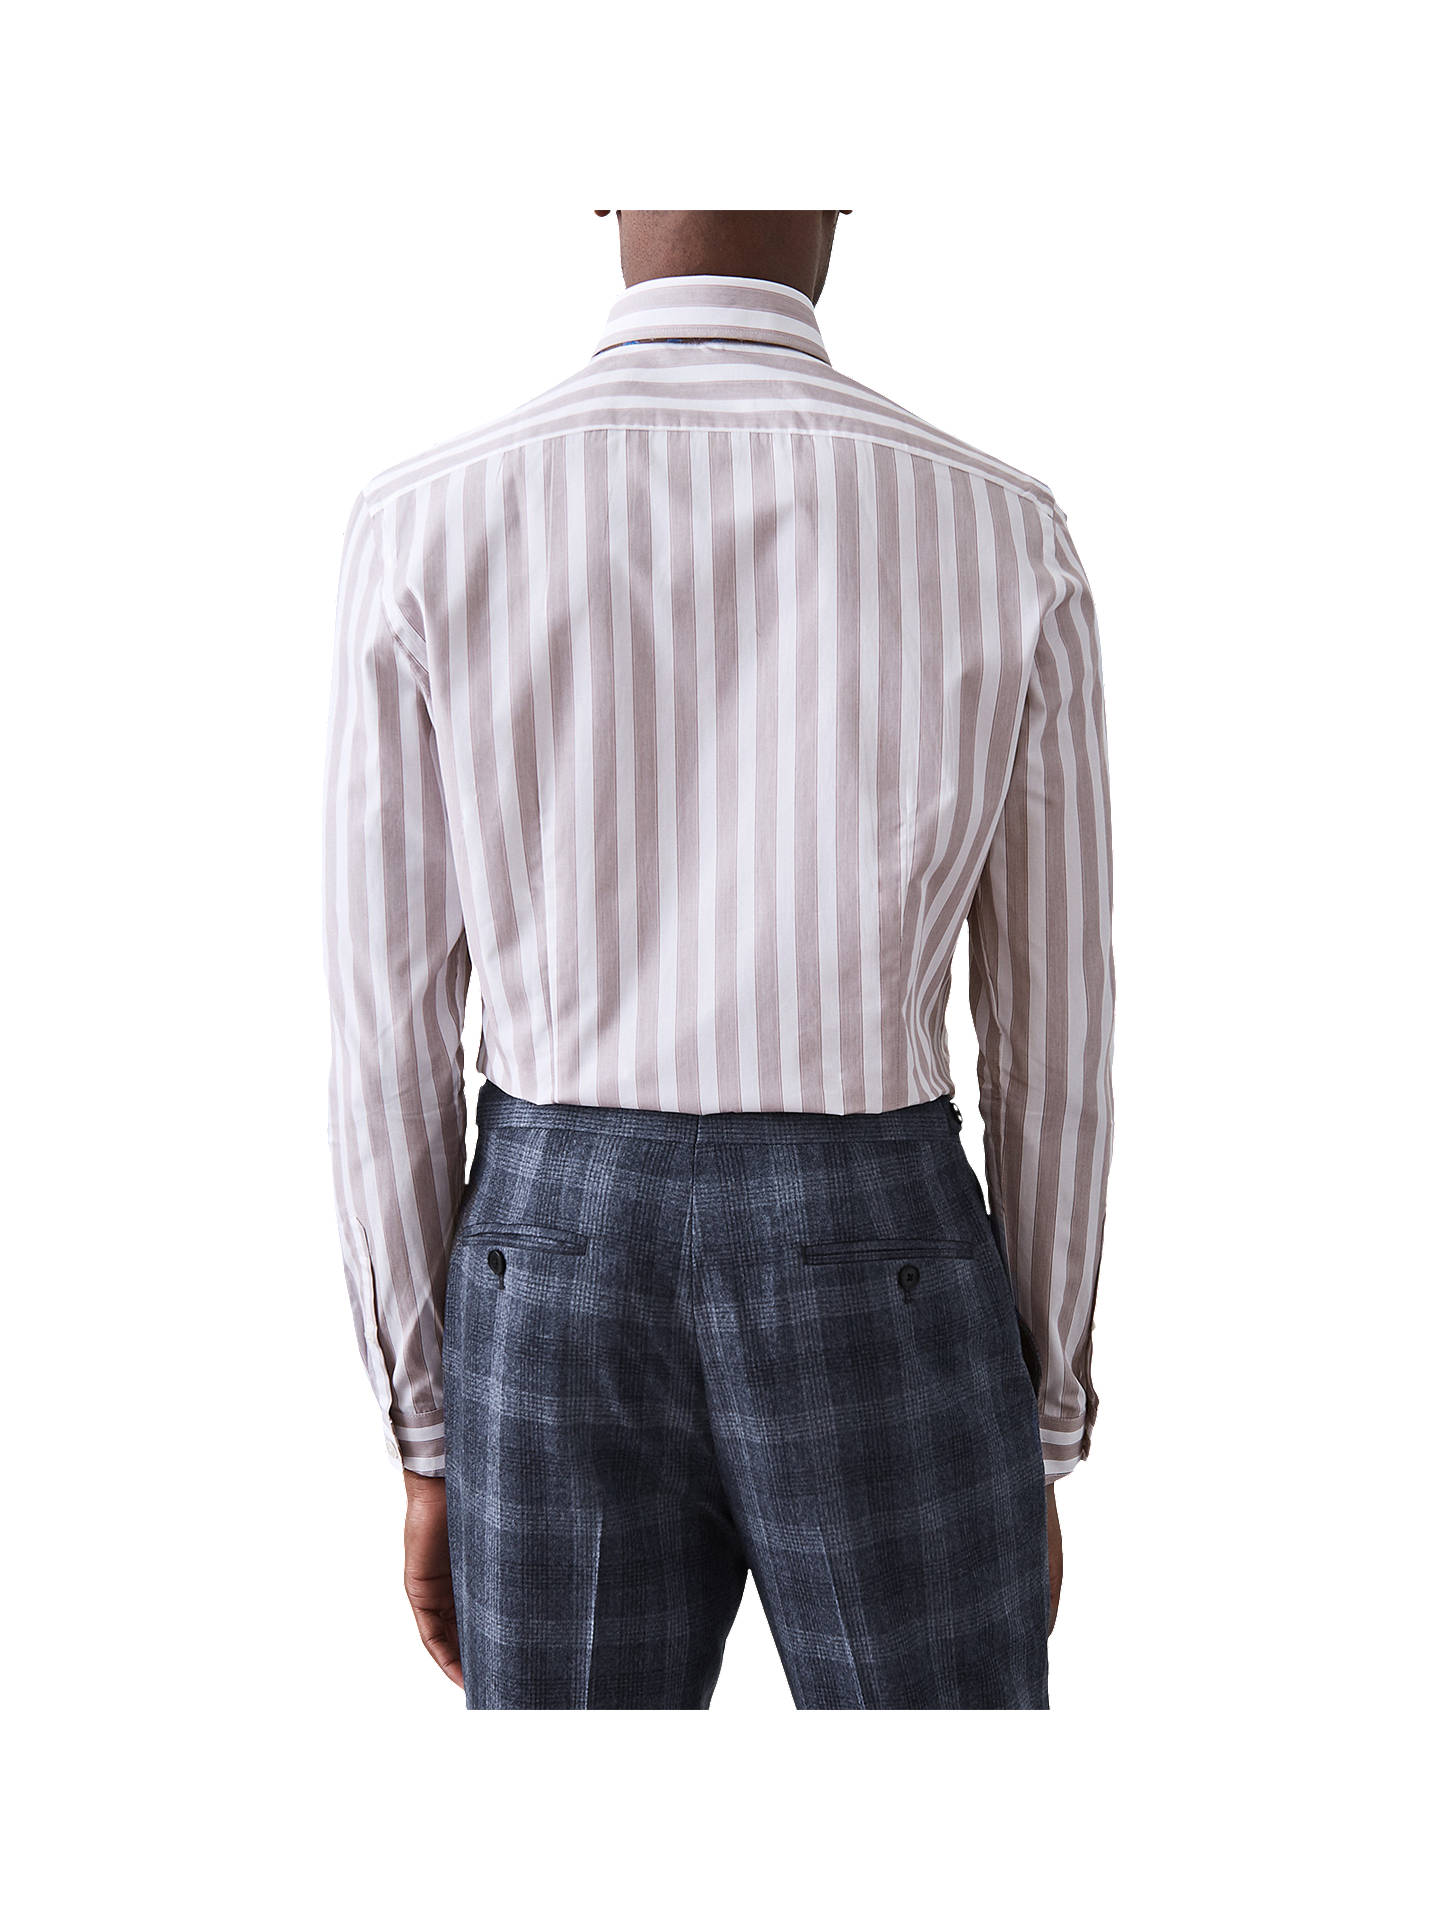 BuyReiss Kelso Block Stripe Slim Fit Shirt, Brown, S Online at johnlewis.com